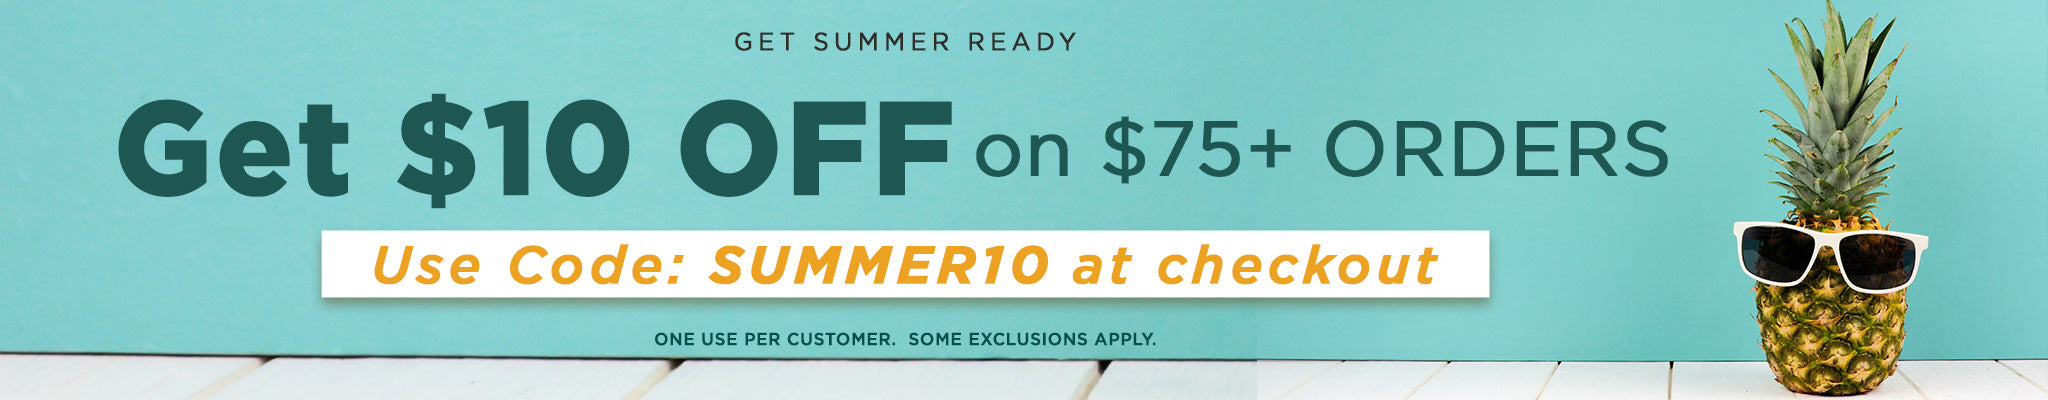 Get $10 Off $75 Orders | Use code: SUMMER10 at checkout | Some exclusions apply. One use per customer.